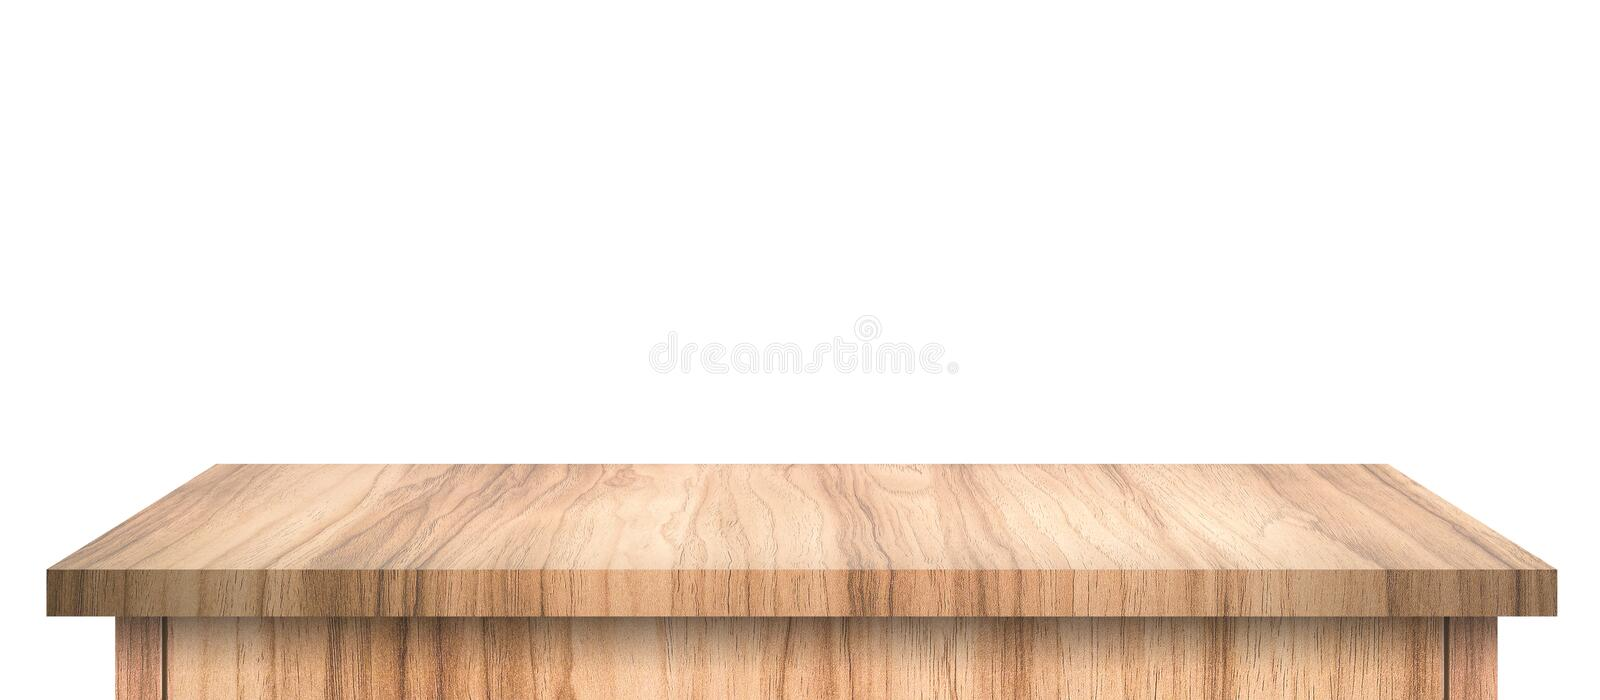 Empty Wood table with abstract pattern isolated on pure white background. Wooden desk and shelf display board with perspective royalty free stock images